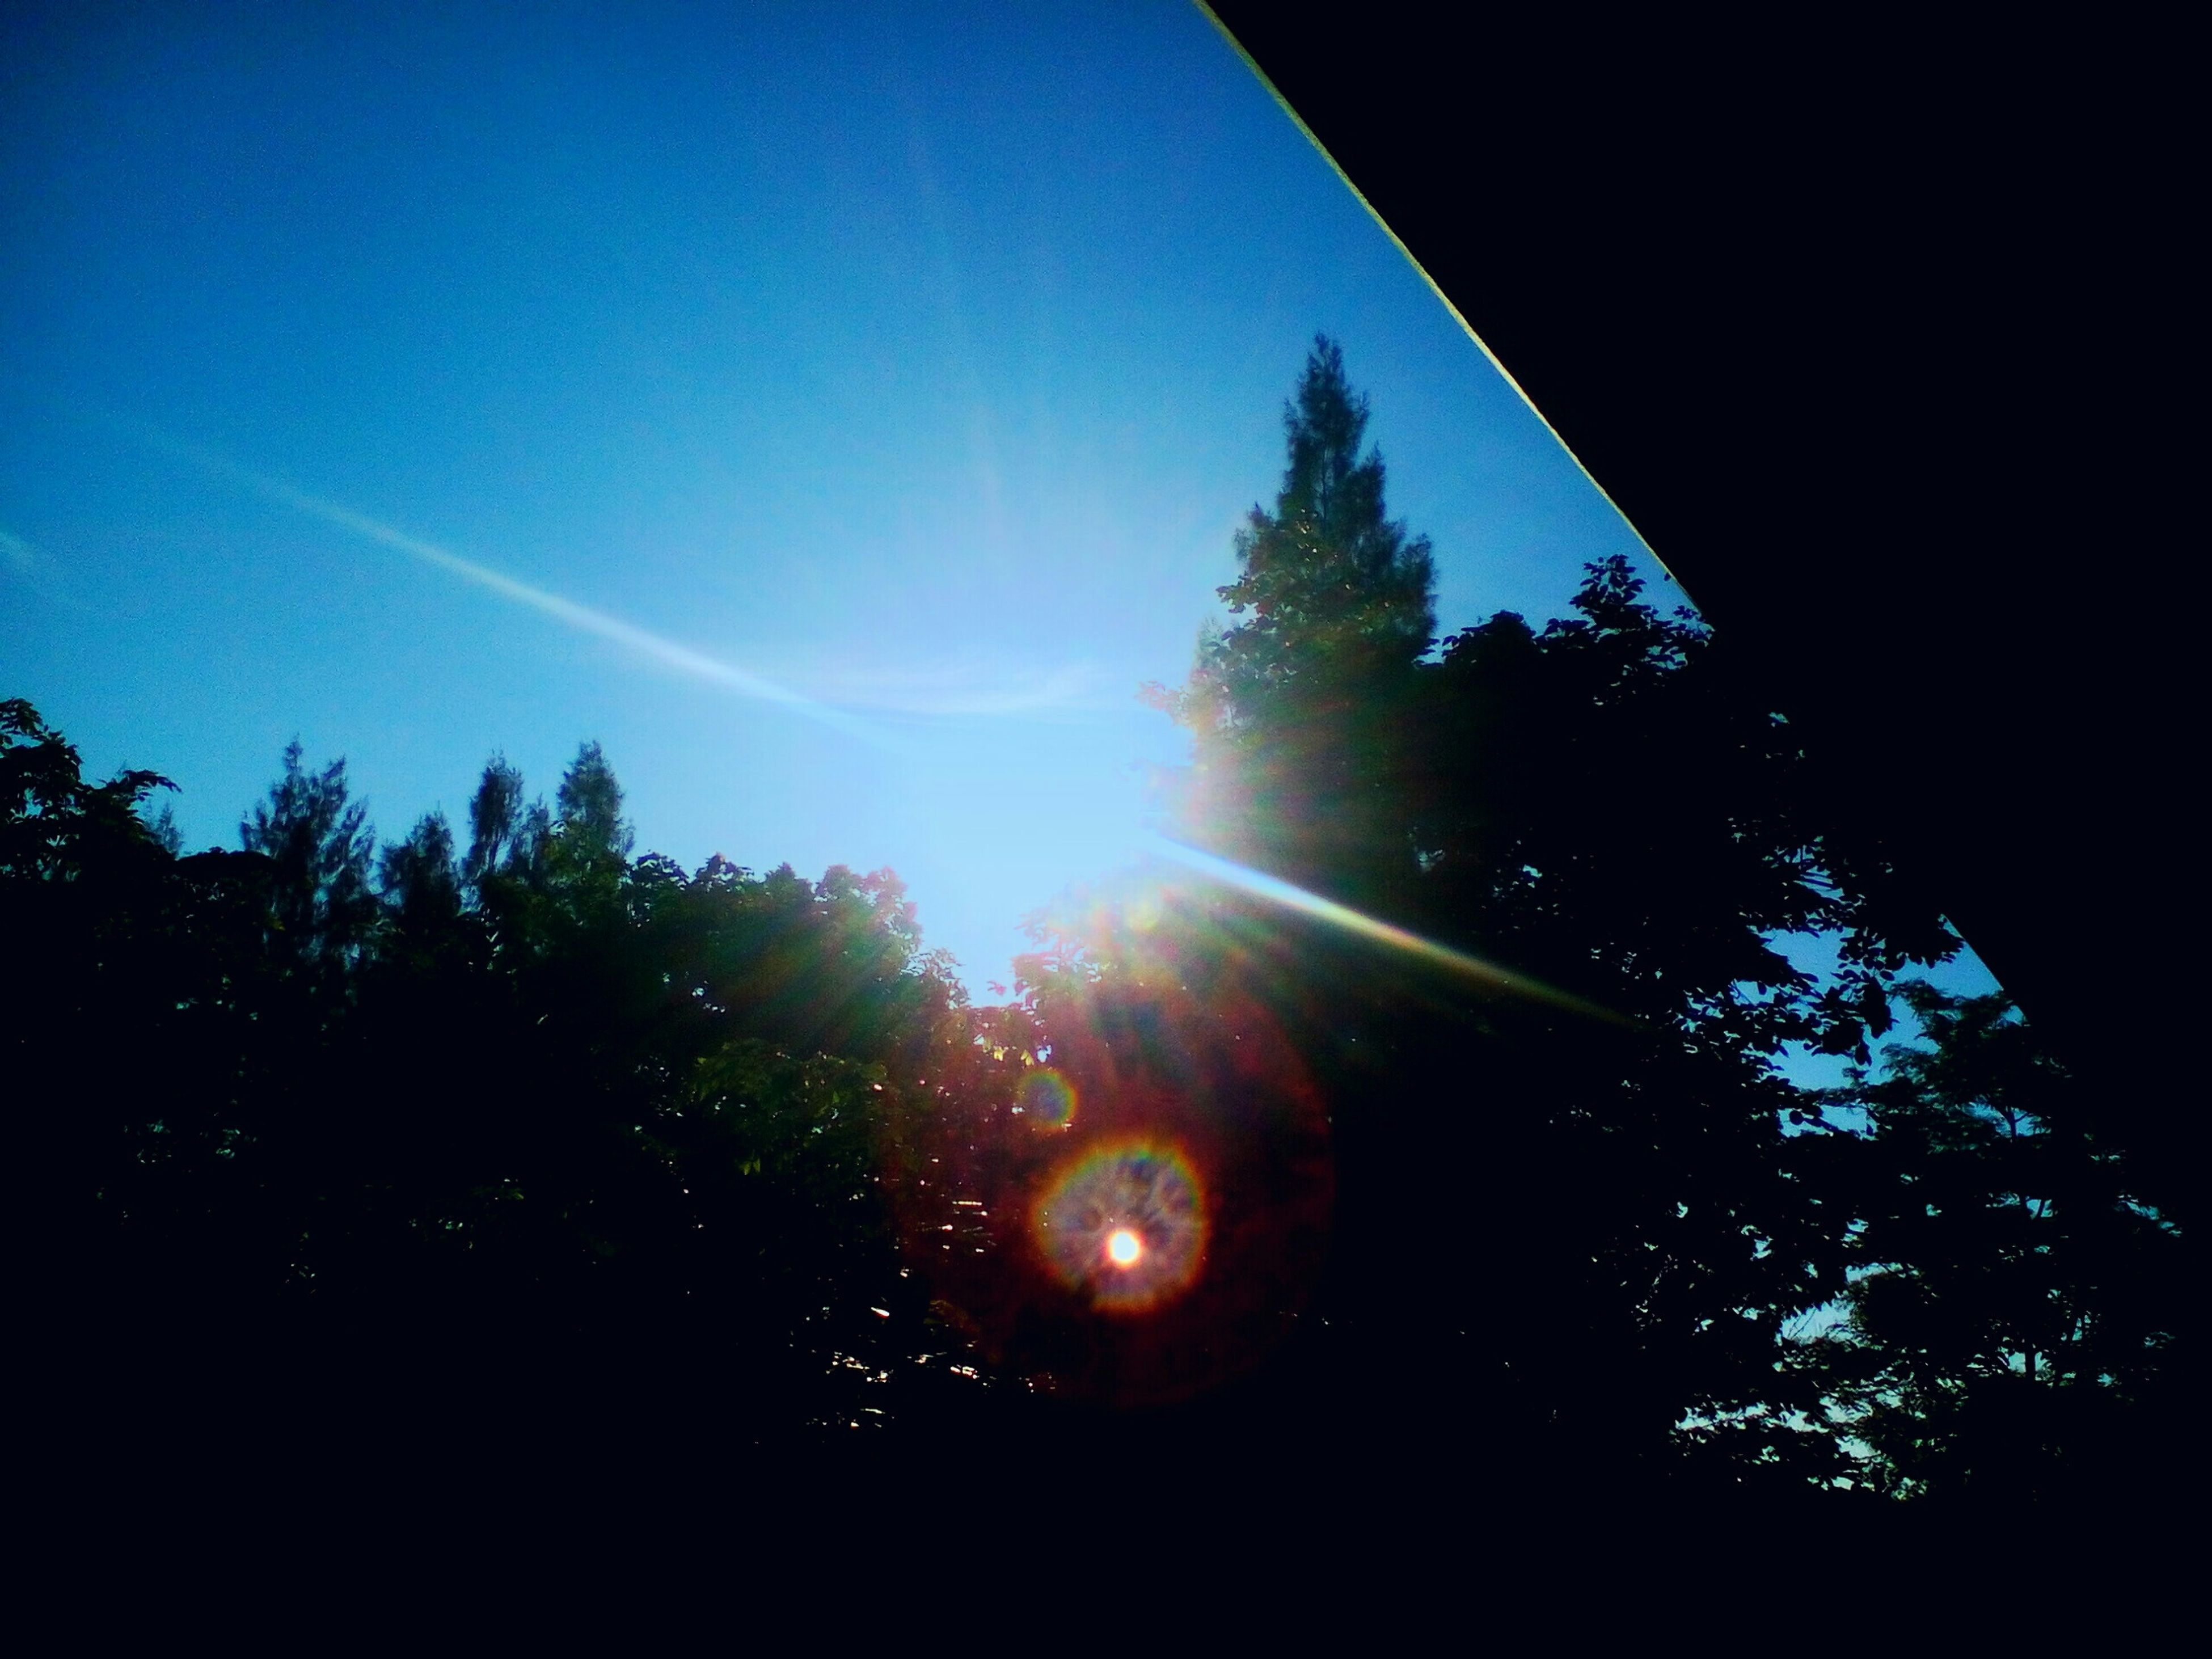 sun, tree, sunbeam, lens flare, sunlight, low angle view, clear sky, silhouette, sky, glowing, bright, blue, nature, tranquility, beauty in nature, shining, scenics, streaming, sunny, shiny